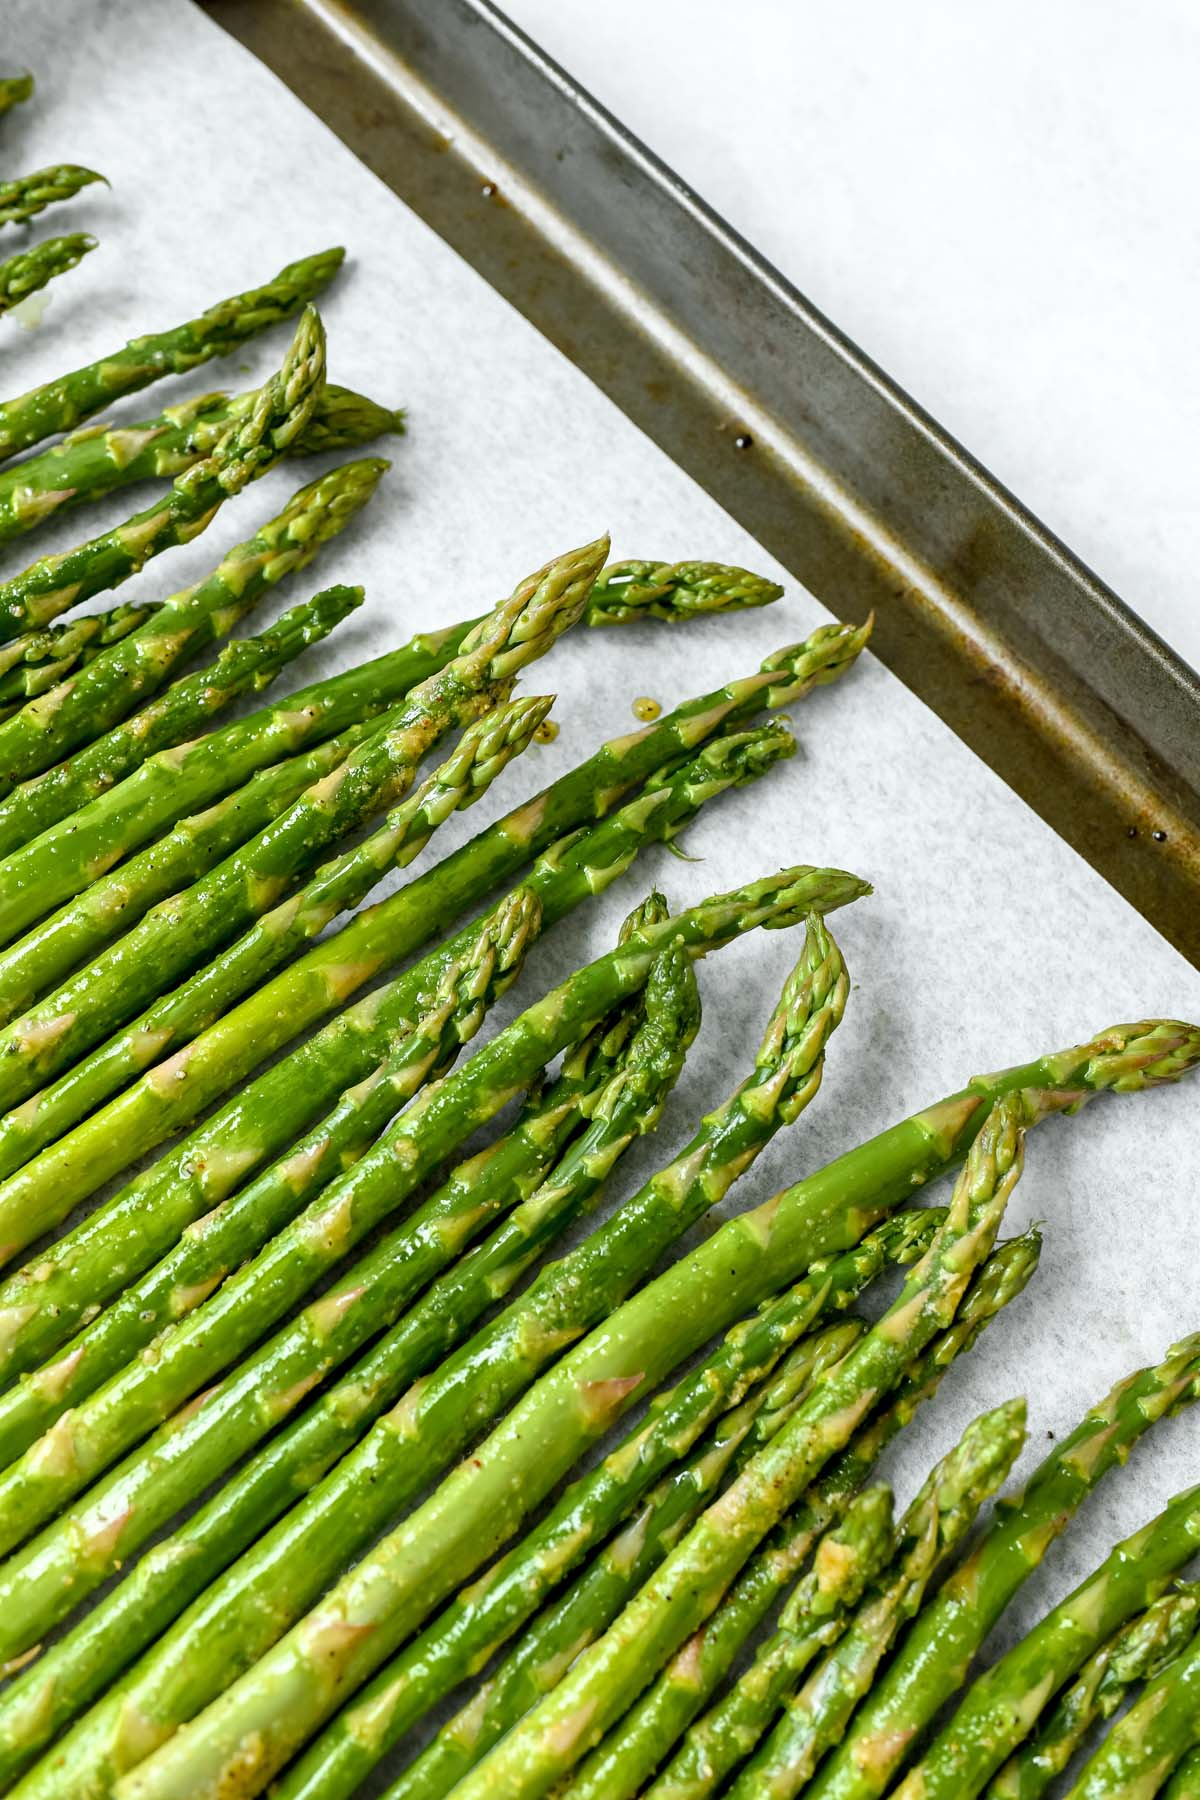 Raw stalks of asparagus on a parchment-lined baking sheet.